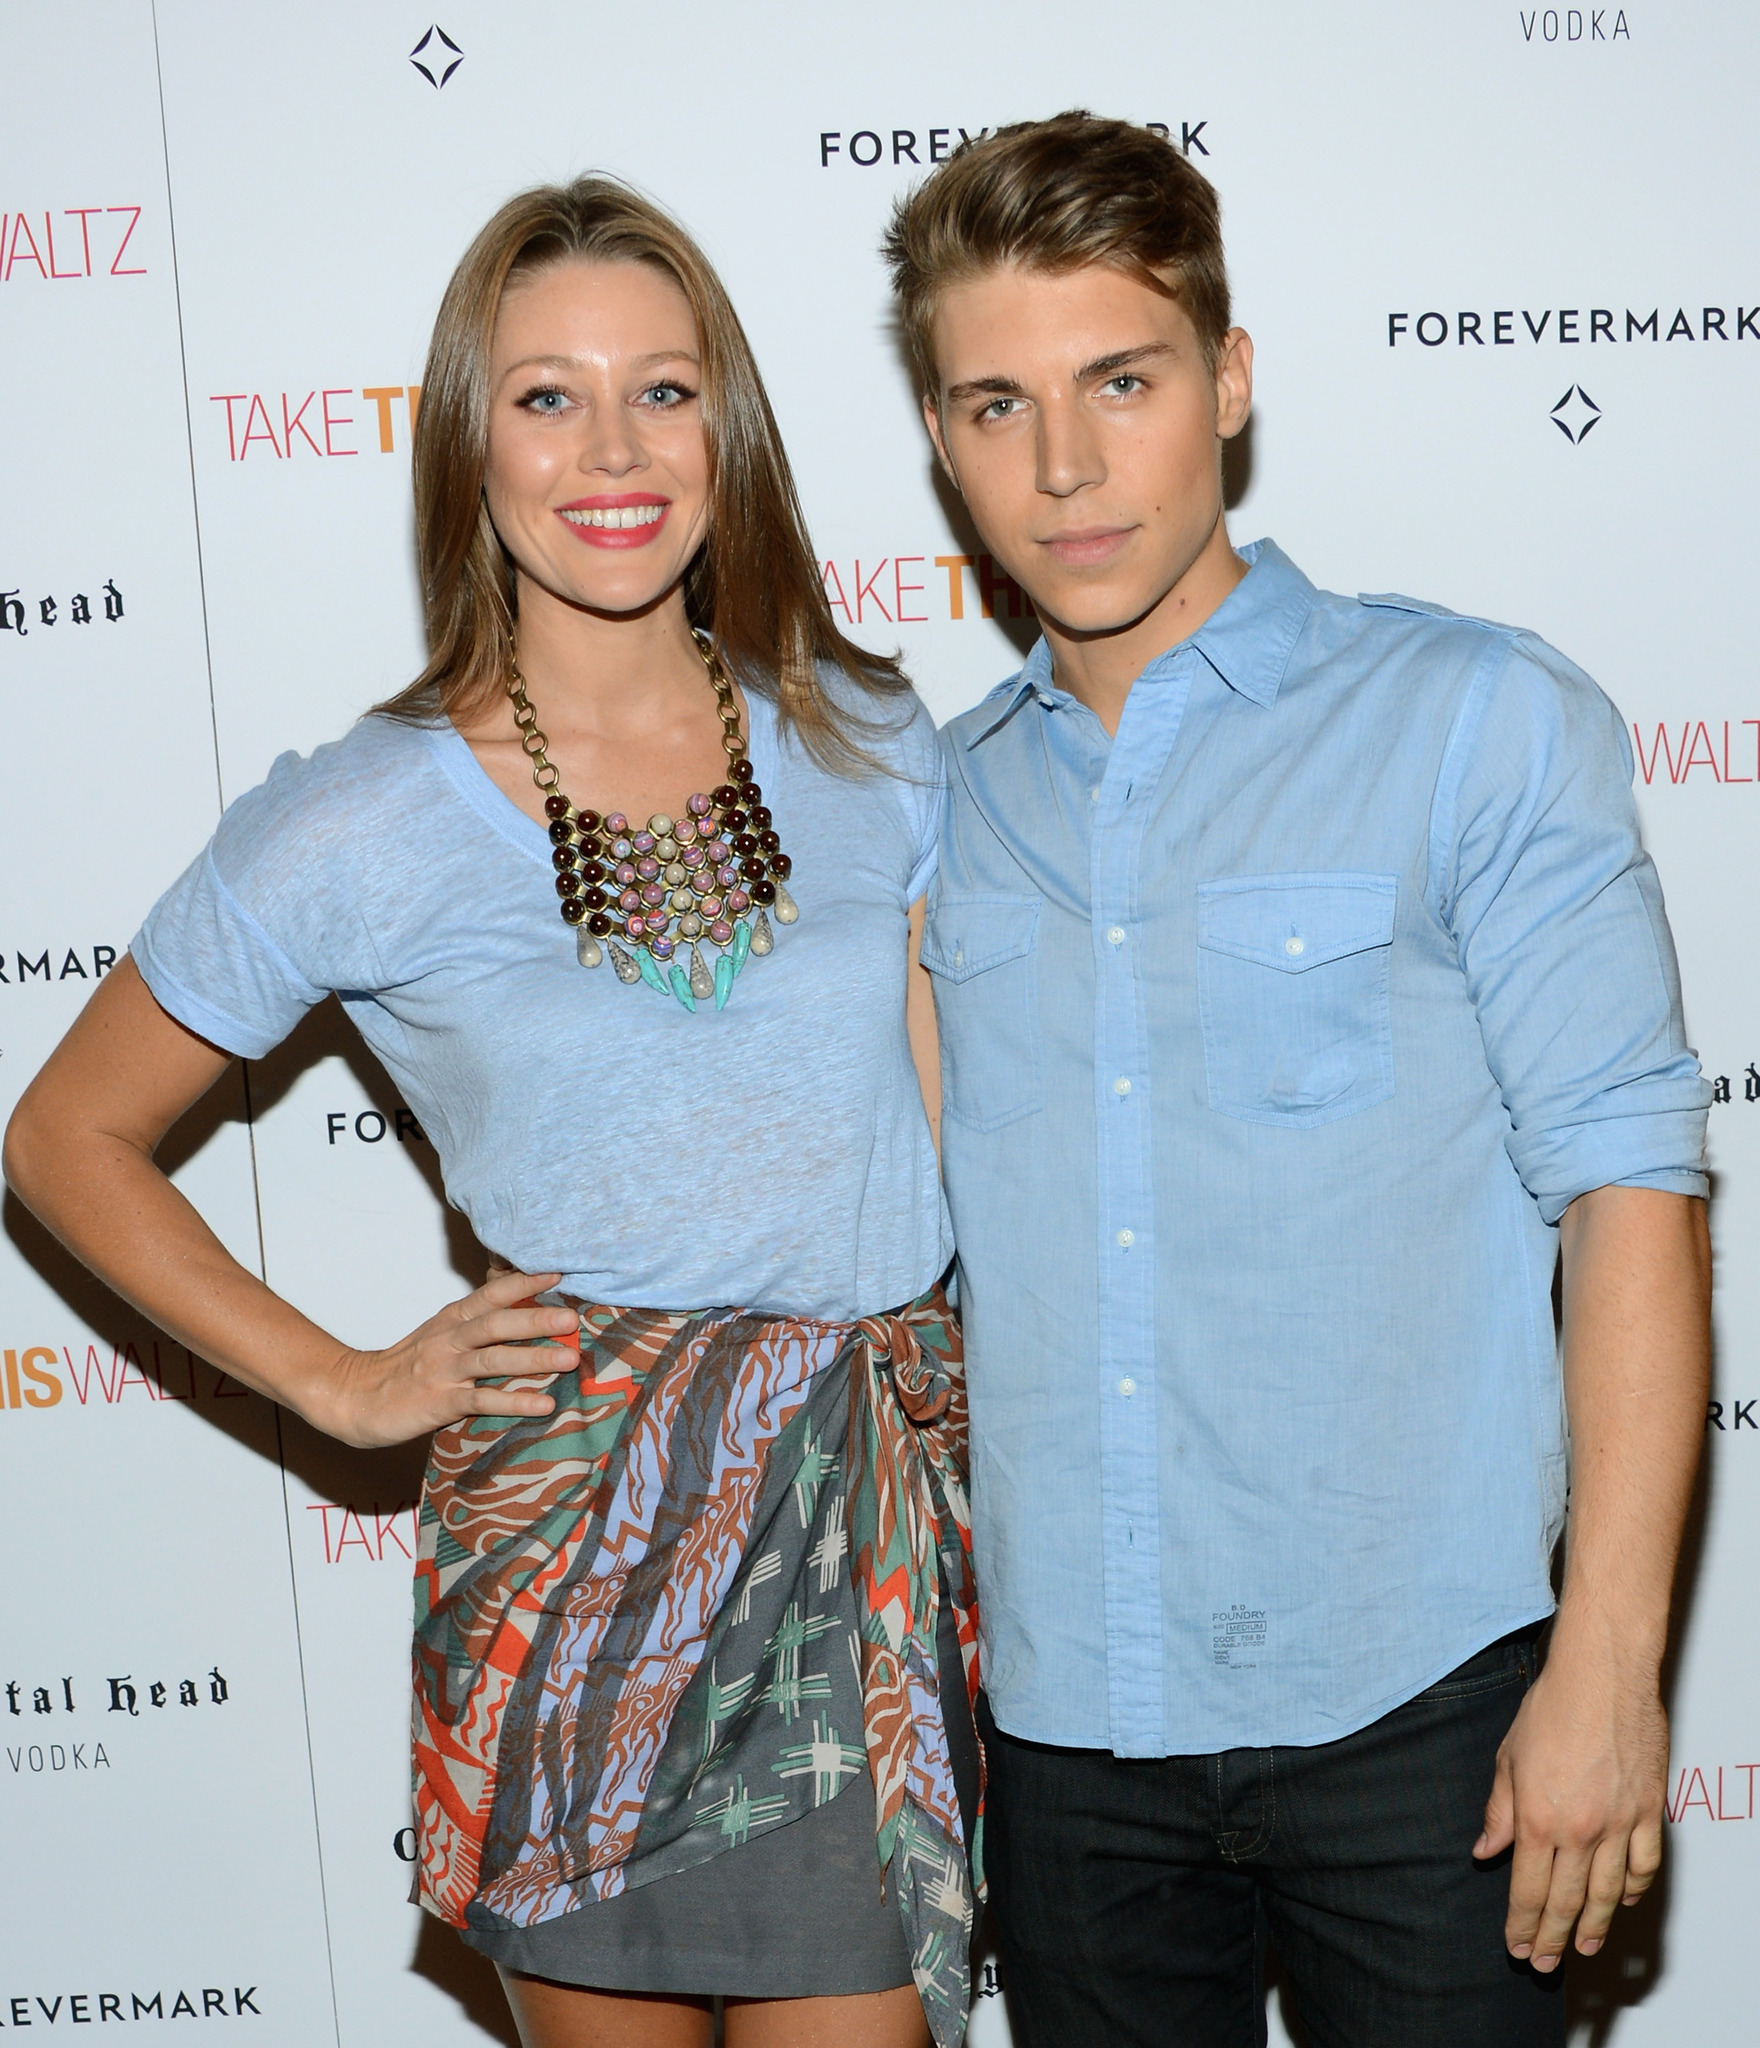 Nolan Gerard Funk at an event for Take This Waltz (2011)